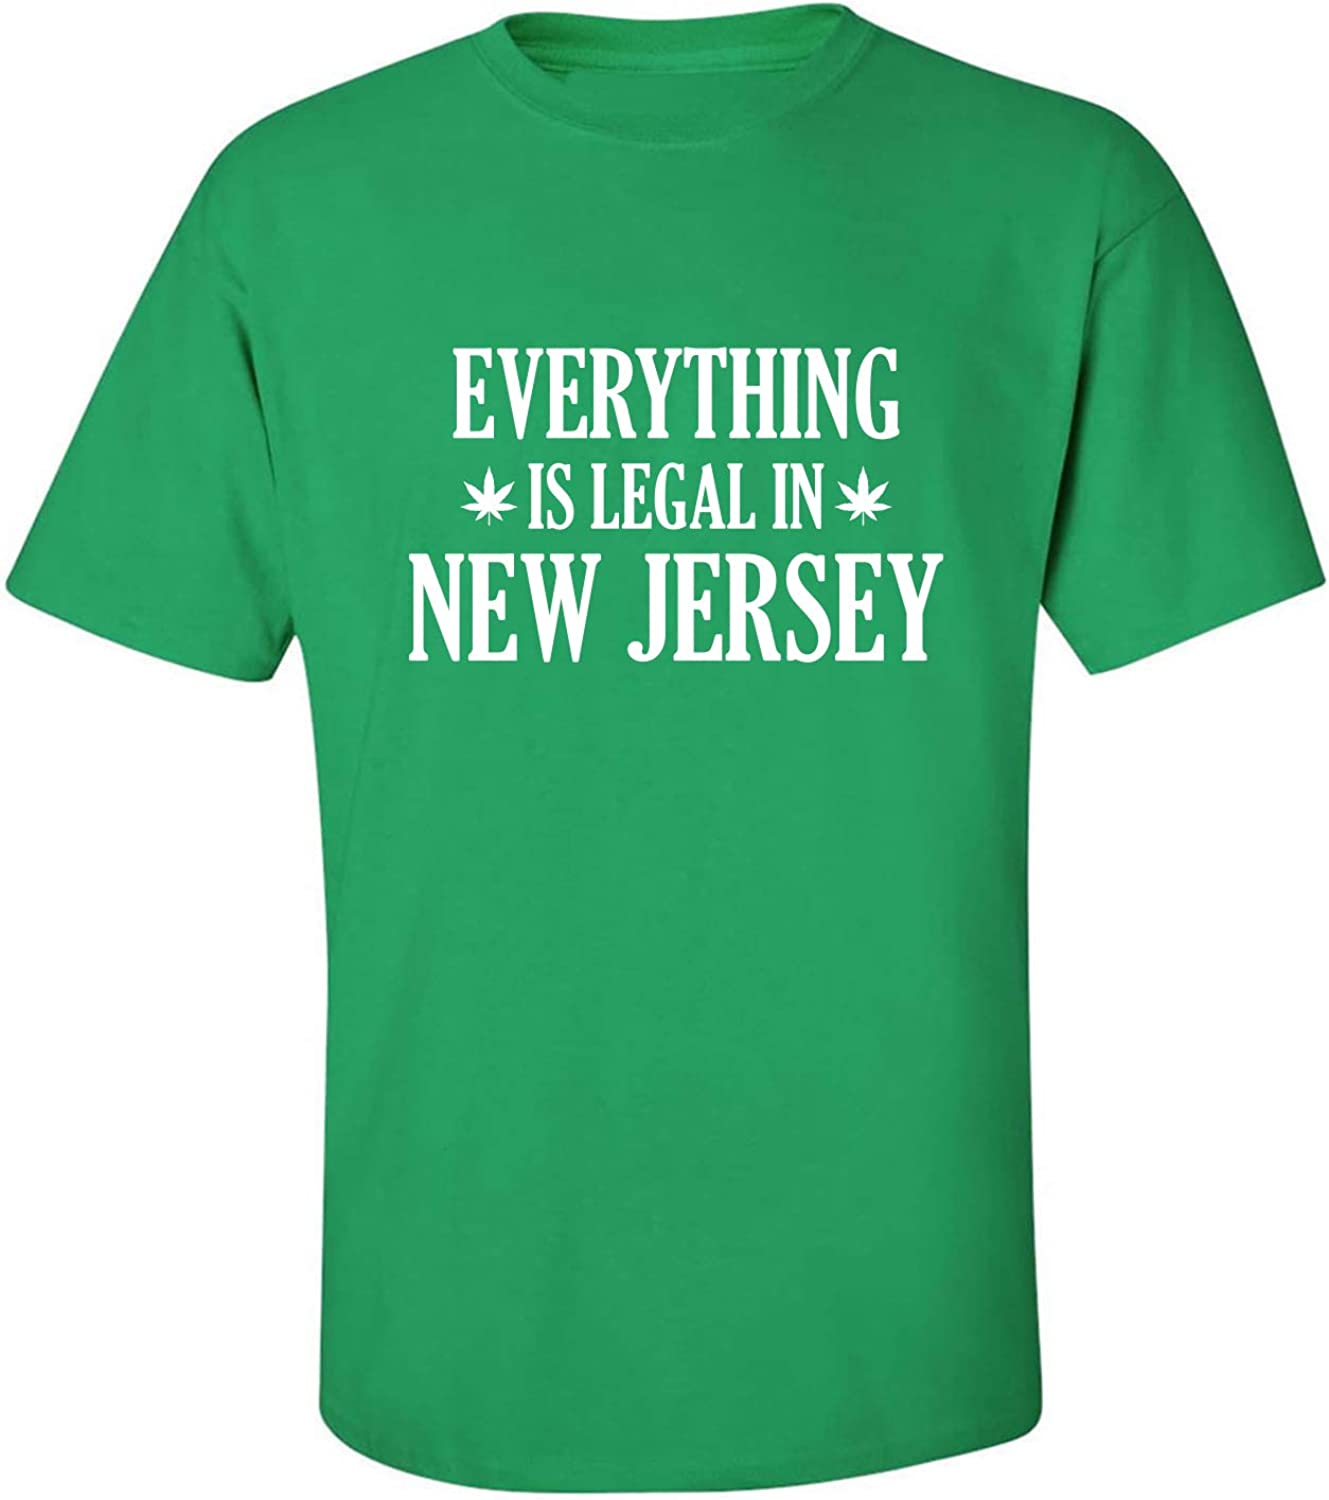 Everything is Legal in New Jersey Adult T-Shirt in Kelly Green - XXXXX-Large